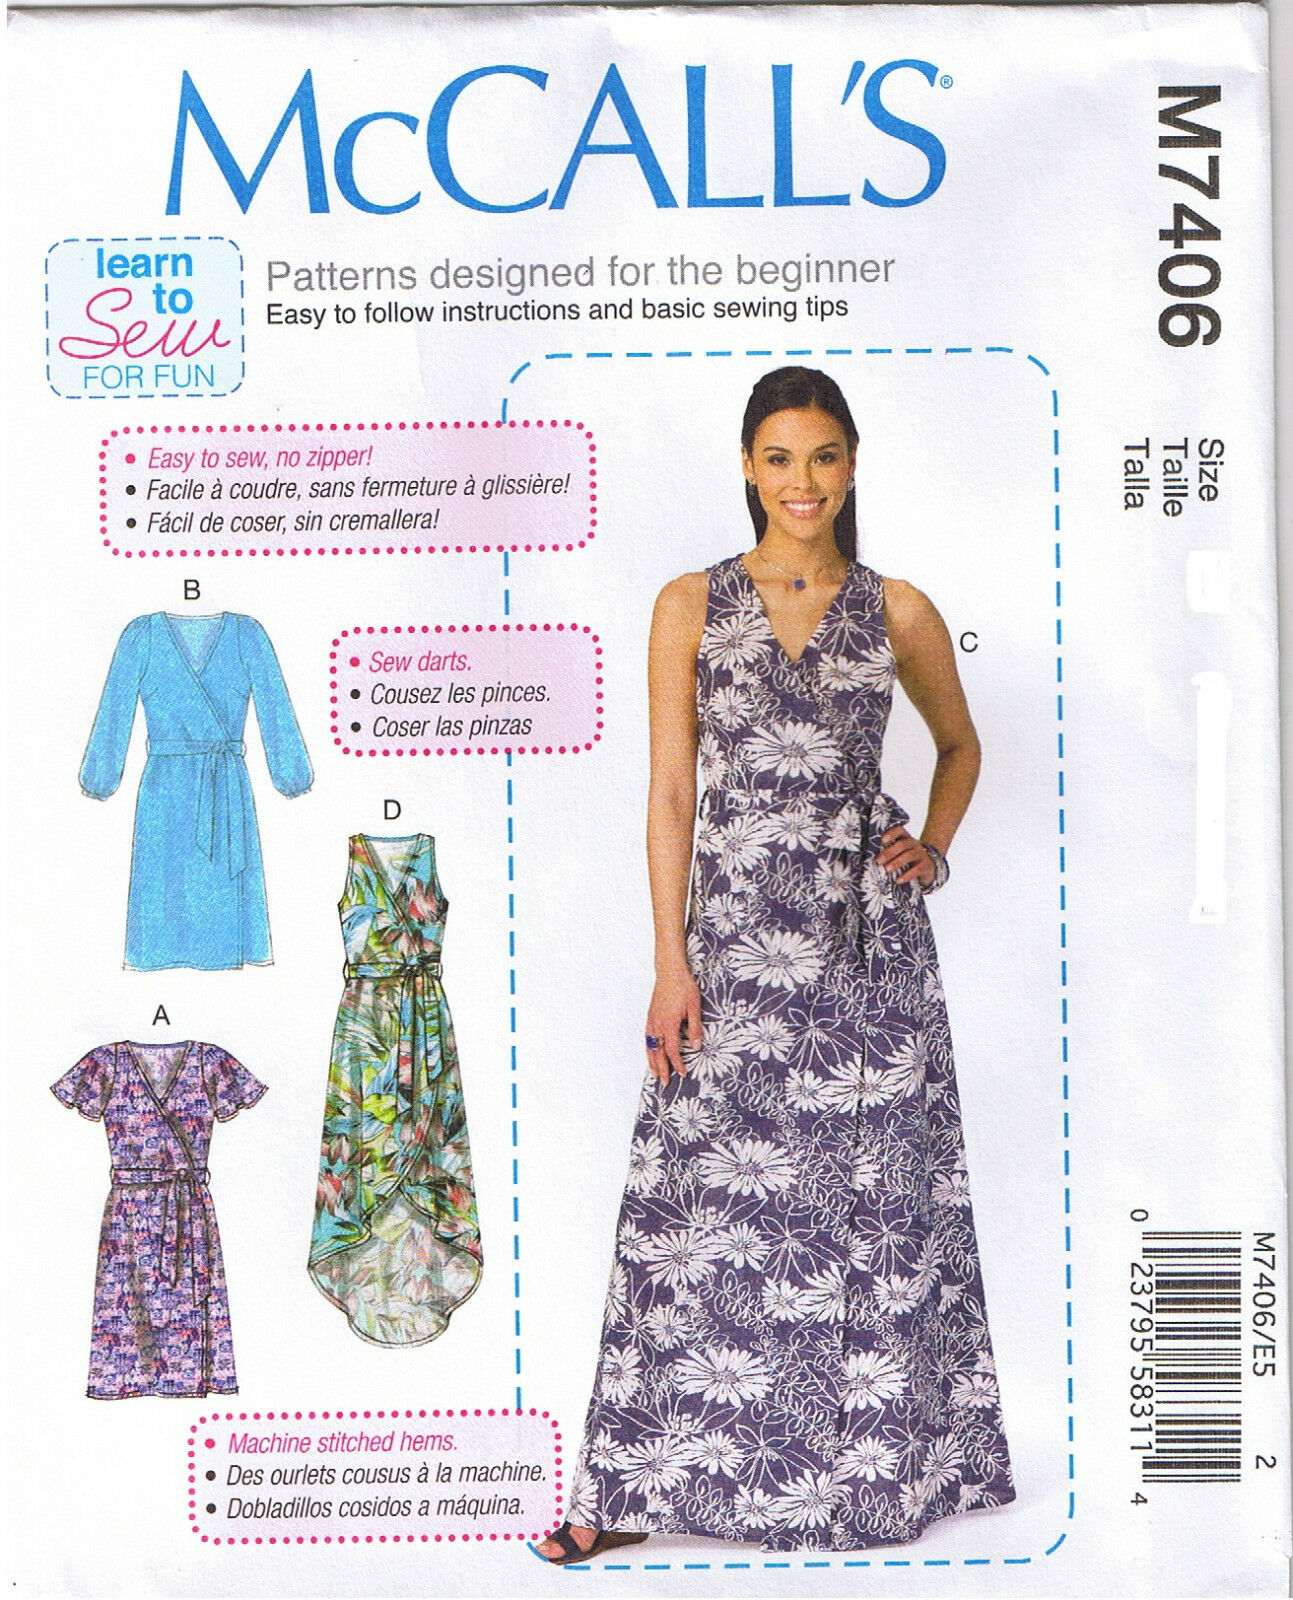 Mccalls 7406 misses wrap dresses and belt sewing pattern learn to picture 1 of 2 jeuxipadfo Choice Image